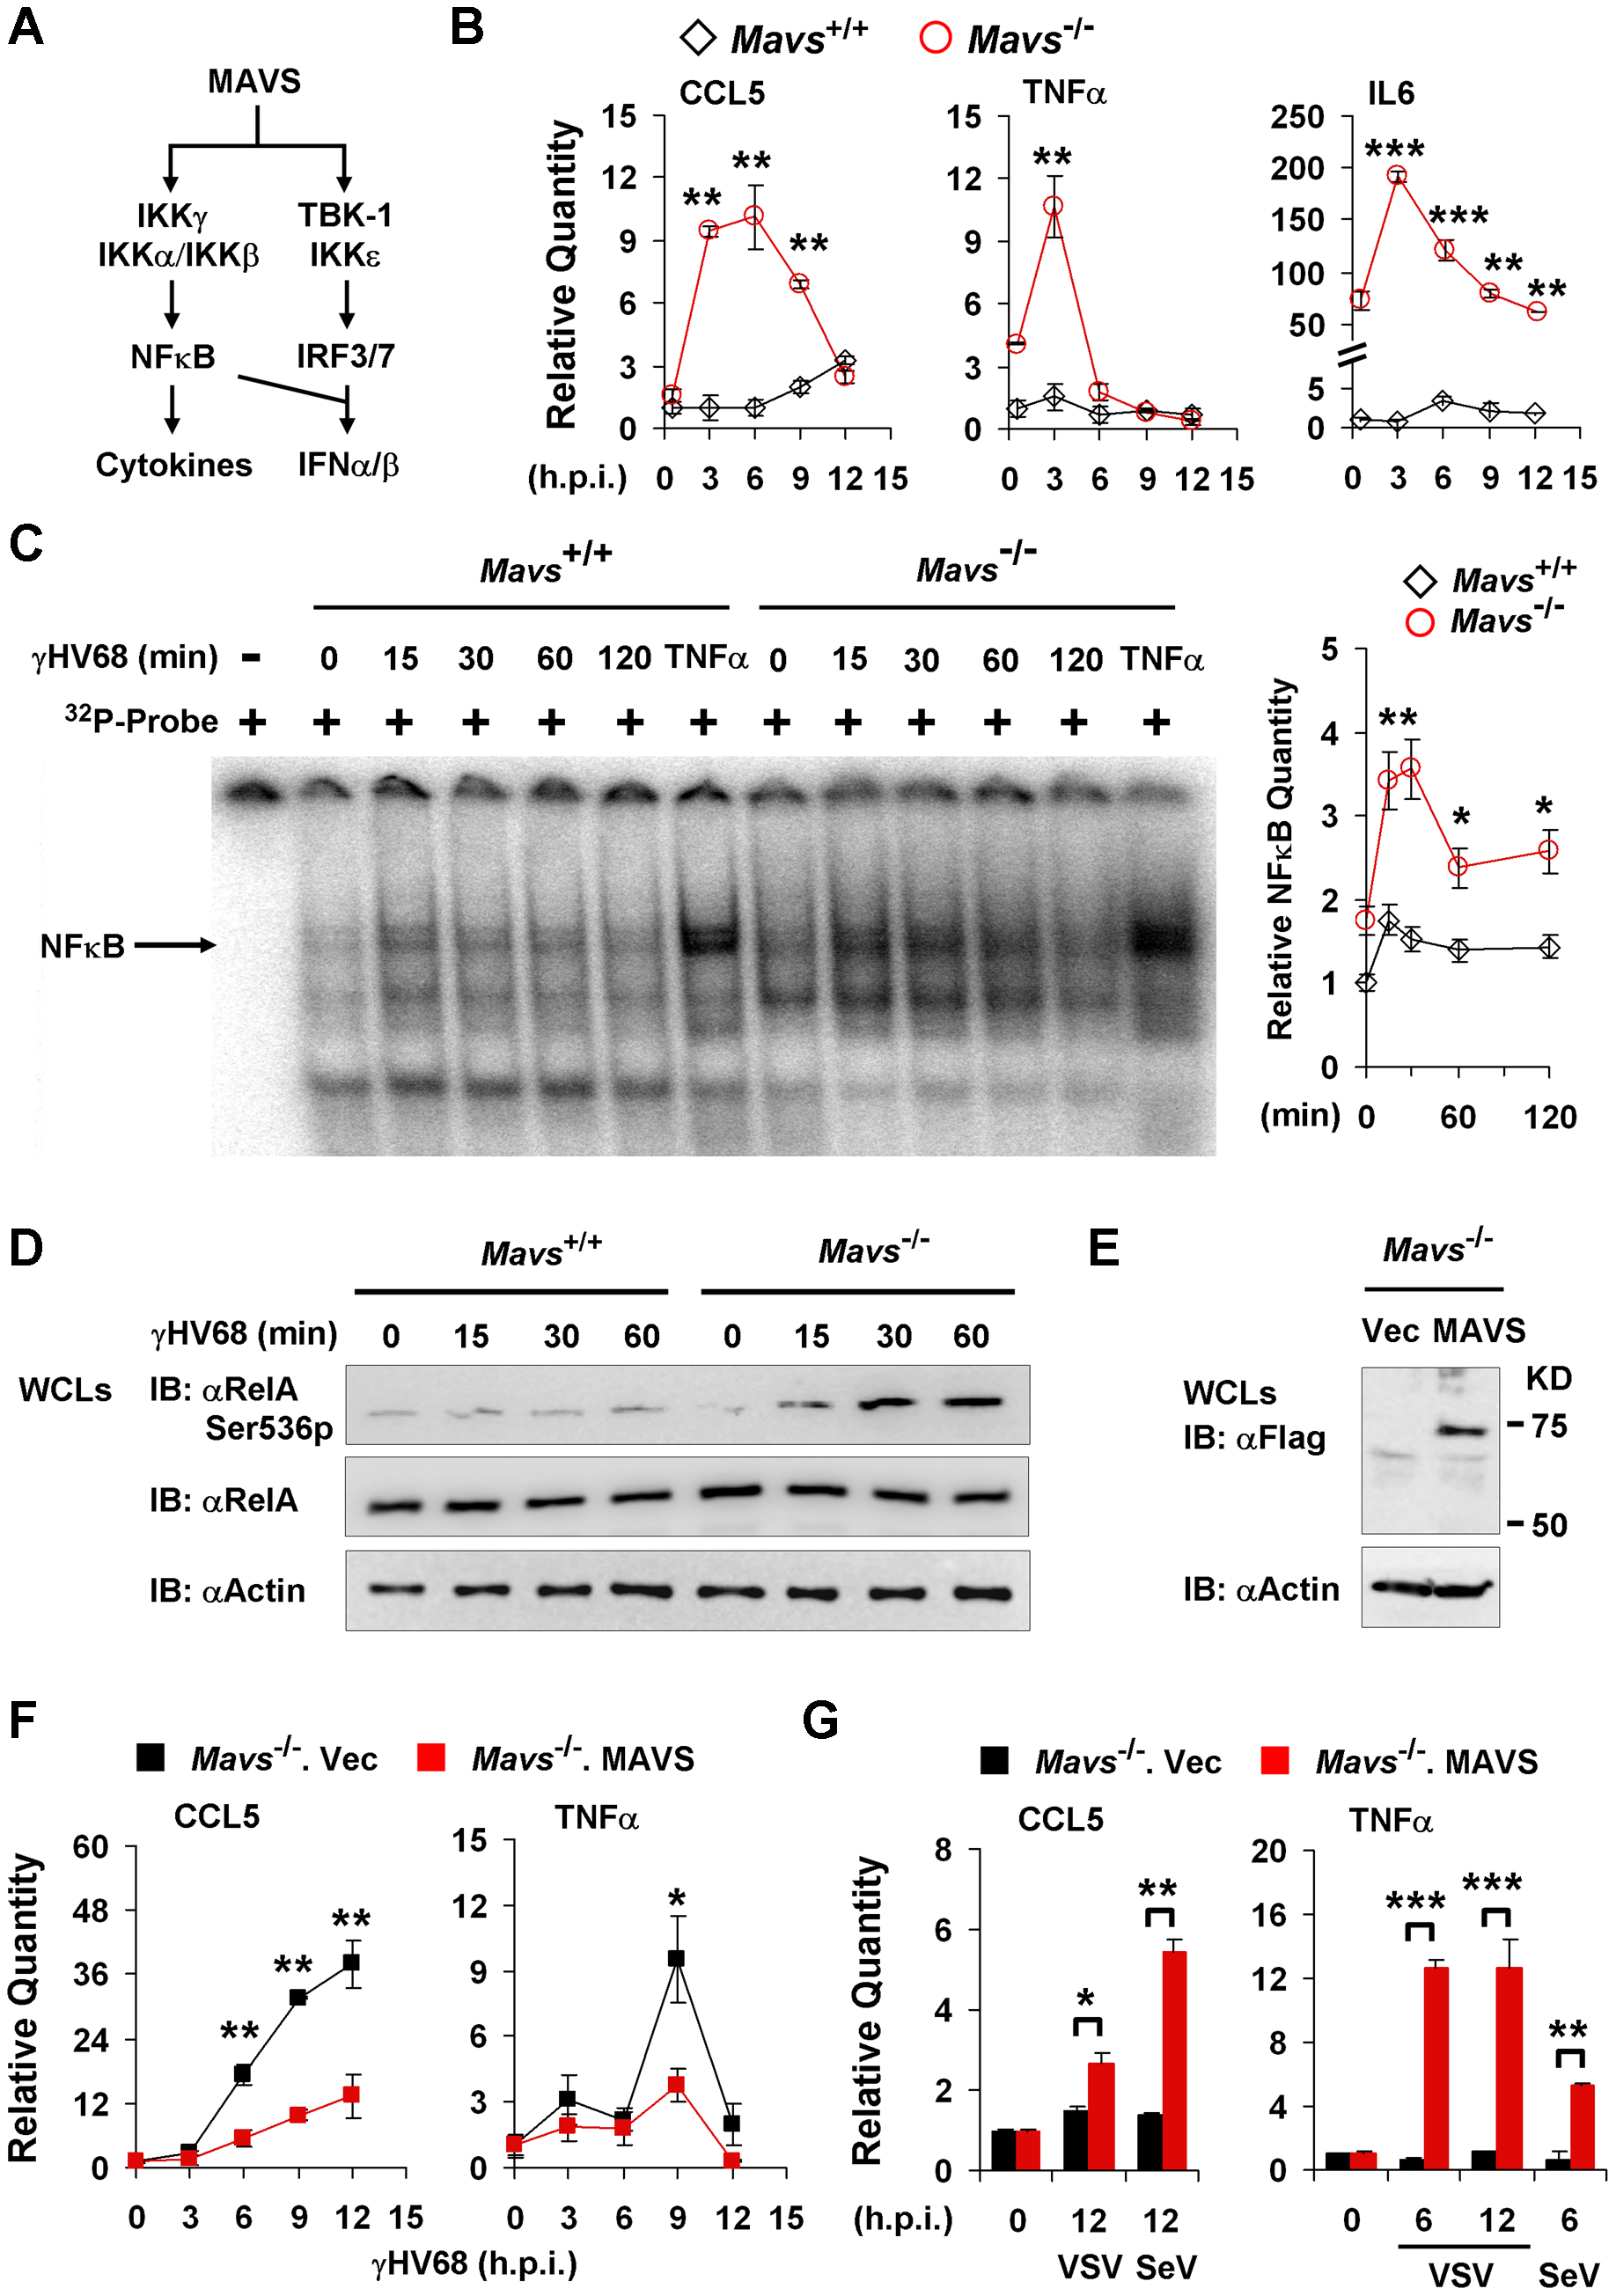 γHV68 abrogates NFκB activation in a MAVS-dependent manner.